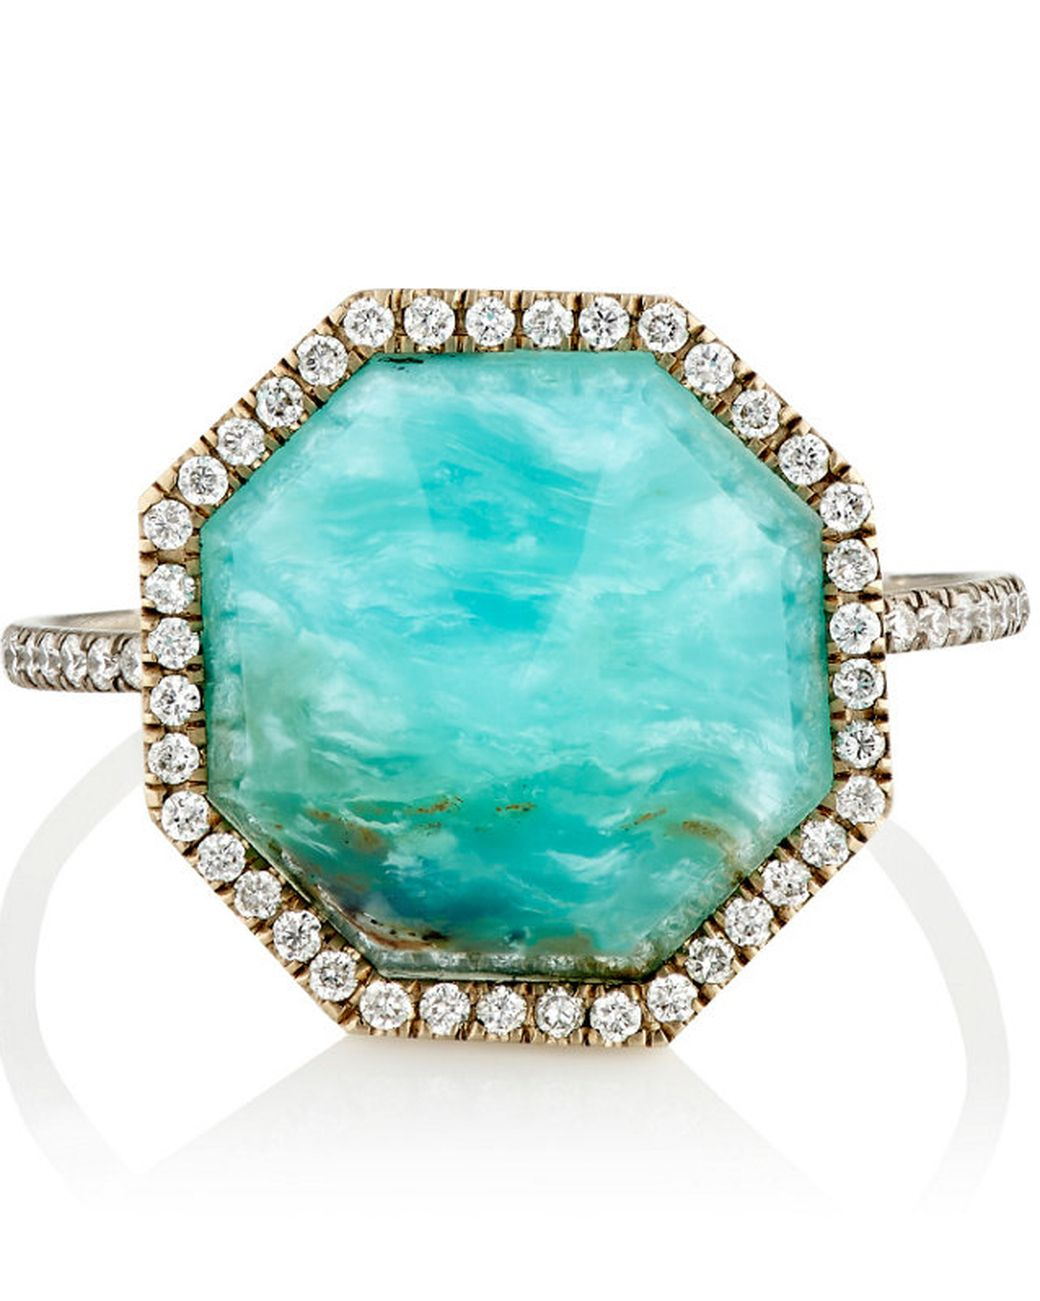 Opal Engagement Rings That Are Ohso Dreamy  Martha Stewart Weddings  Monique  Pean